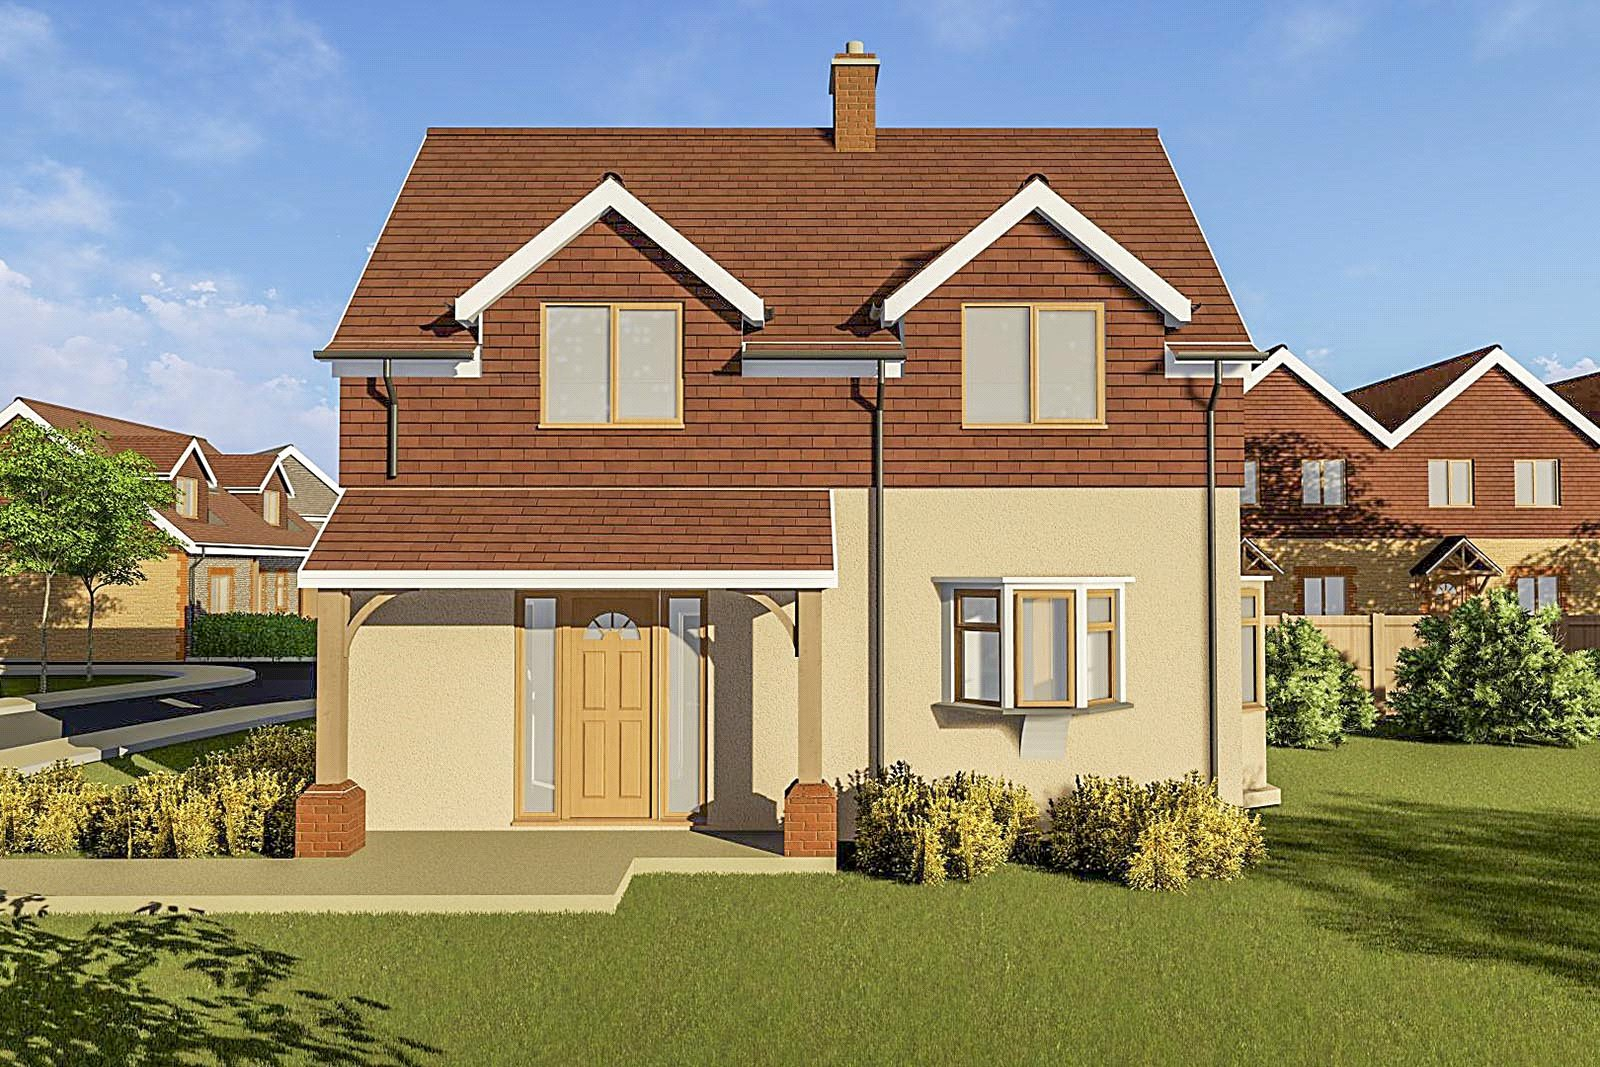 4 bed house for sale in Swallows Gate, Dappers Lane, Angmering, BN16